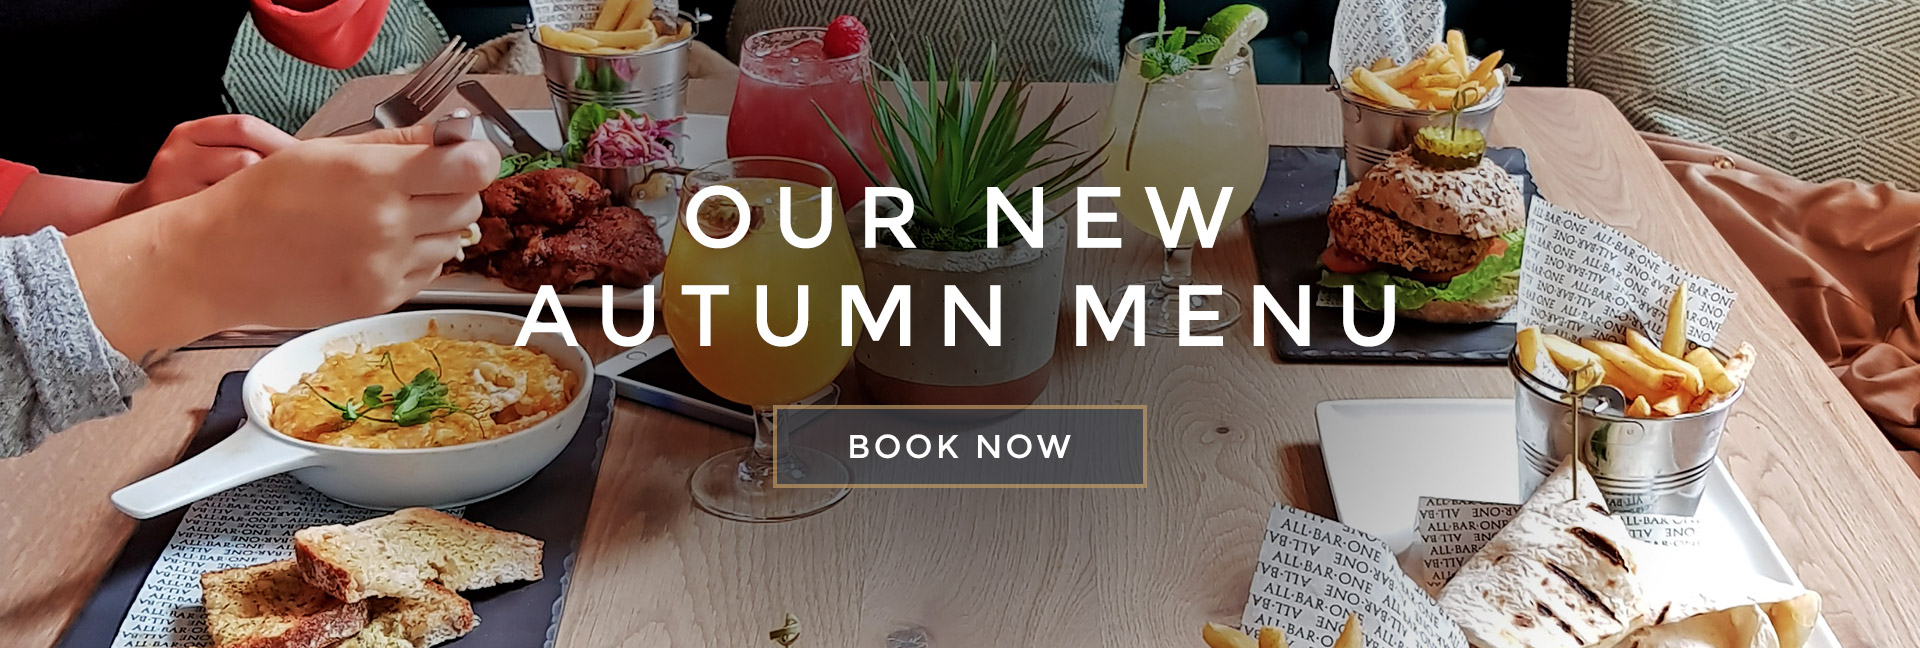 Our new Autumn menu at All Bar One Battersea - Book now